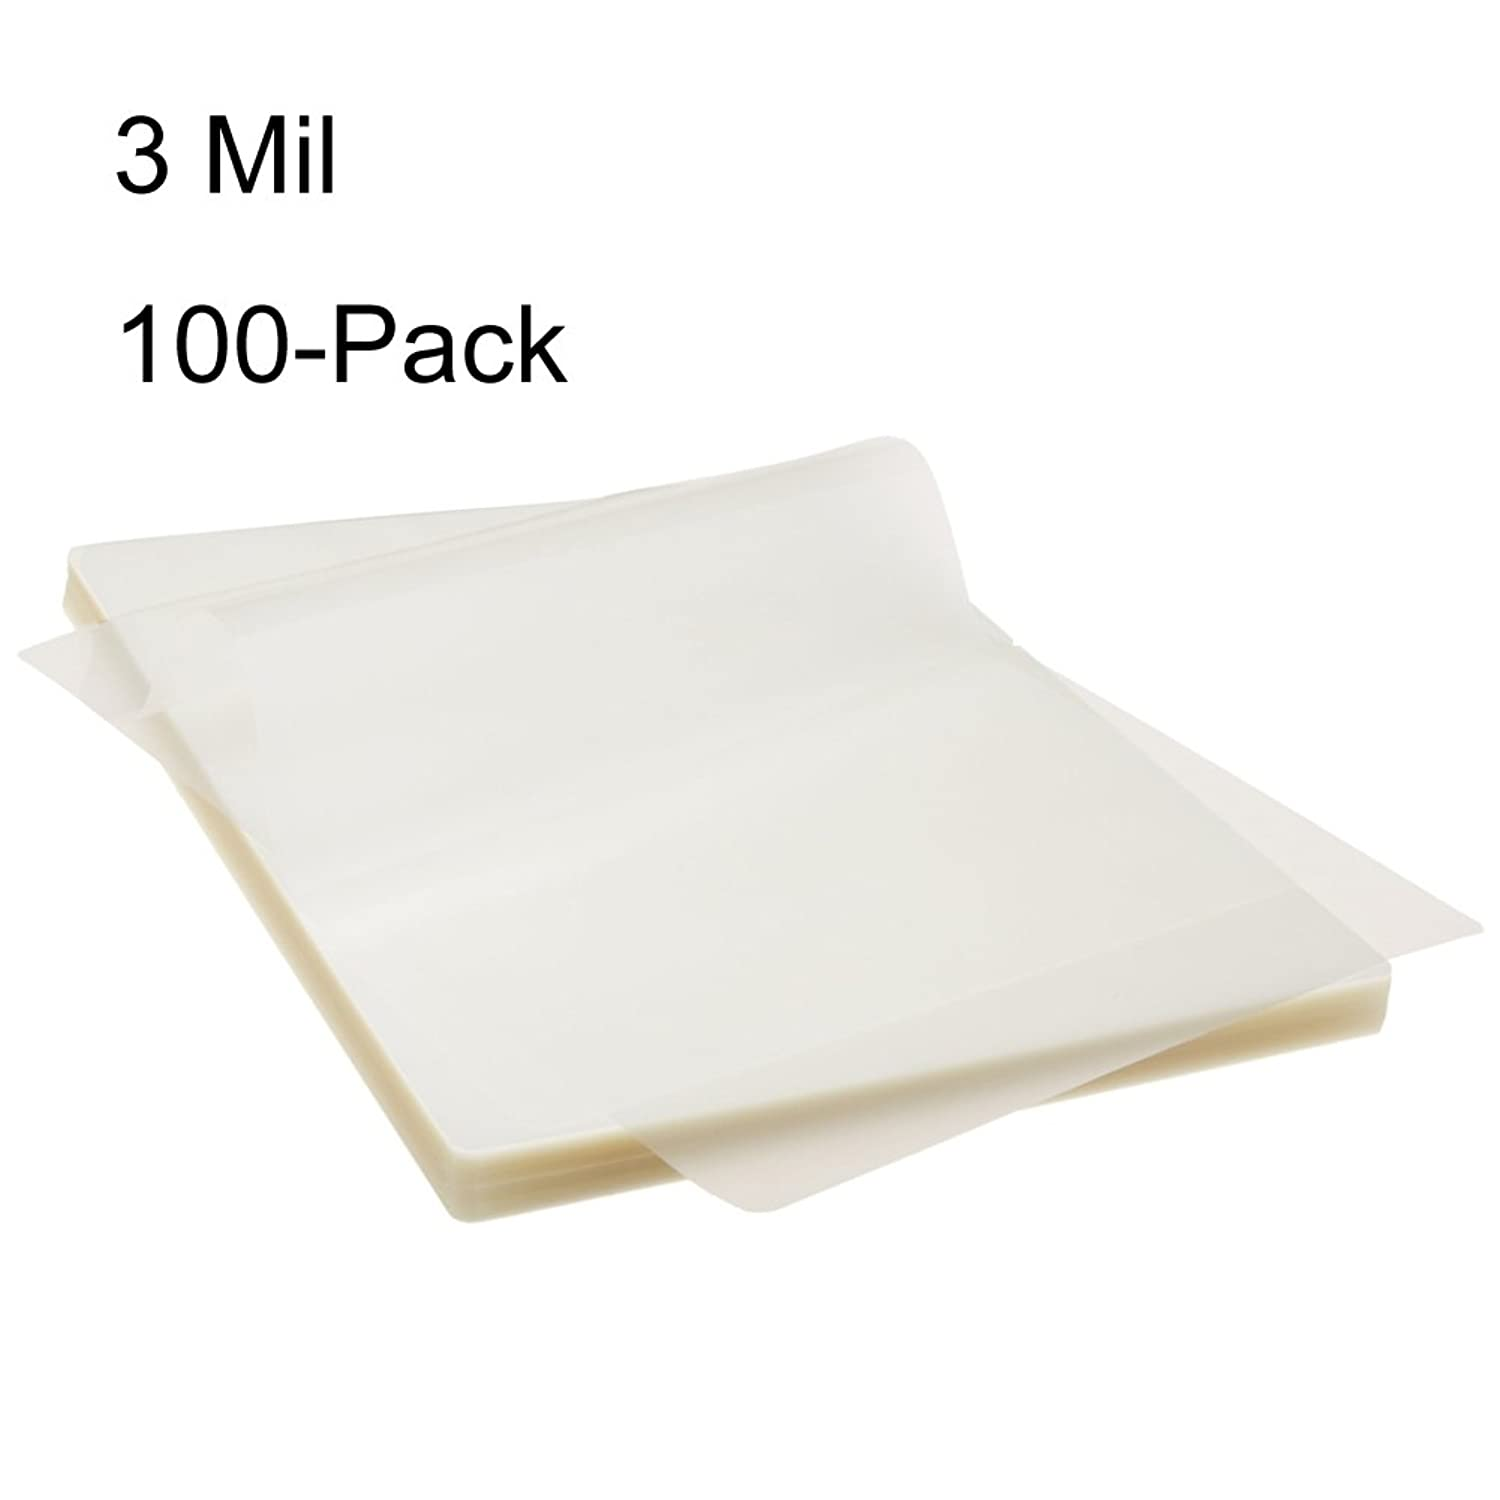 BESTEASY 3 Mil Clear Letter Size Thermal Laminating Pouches, 8.9'' x 11.4'', Pack of 100